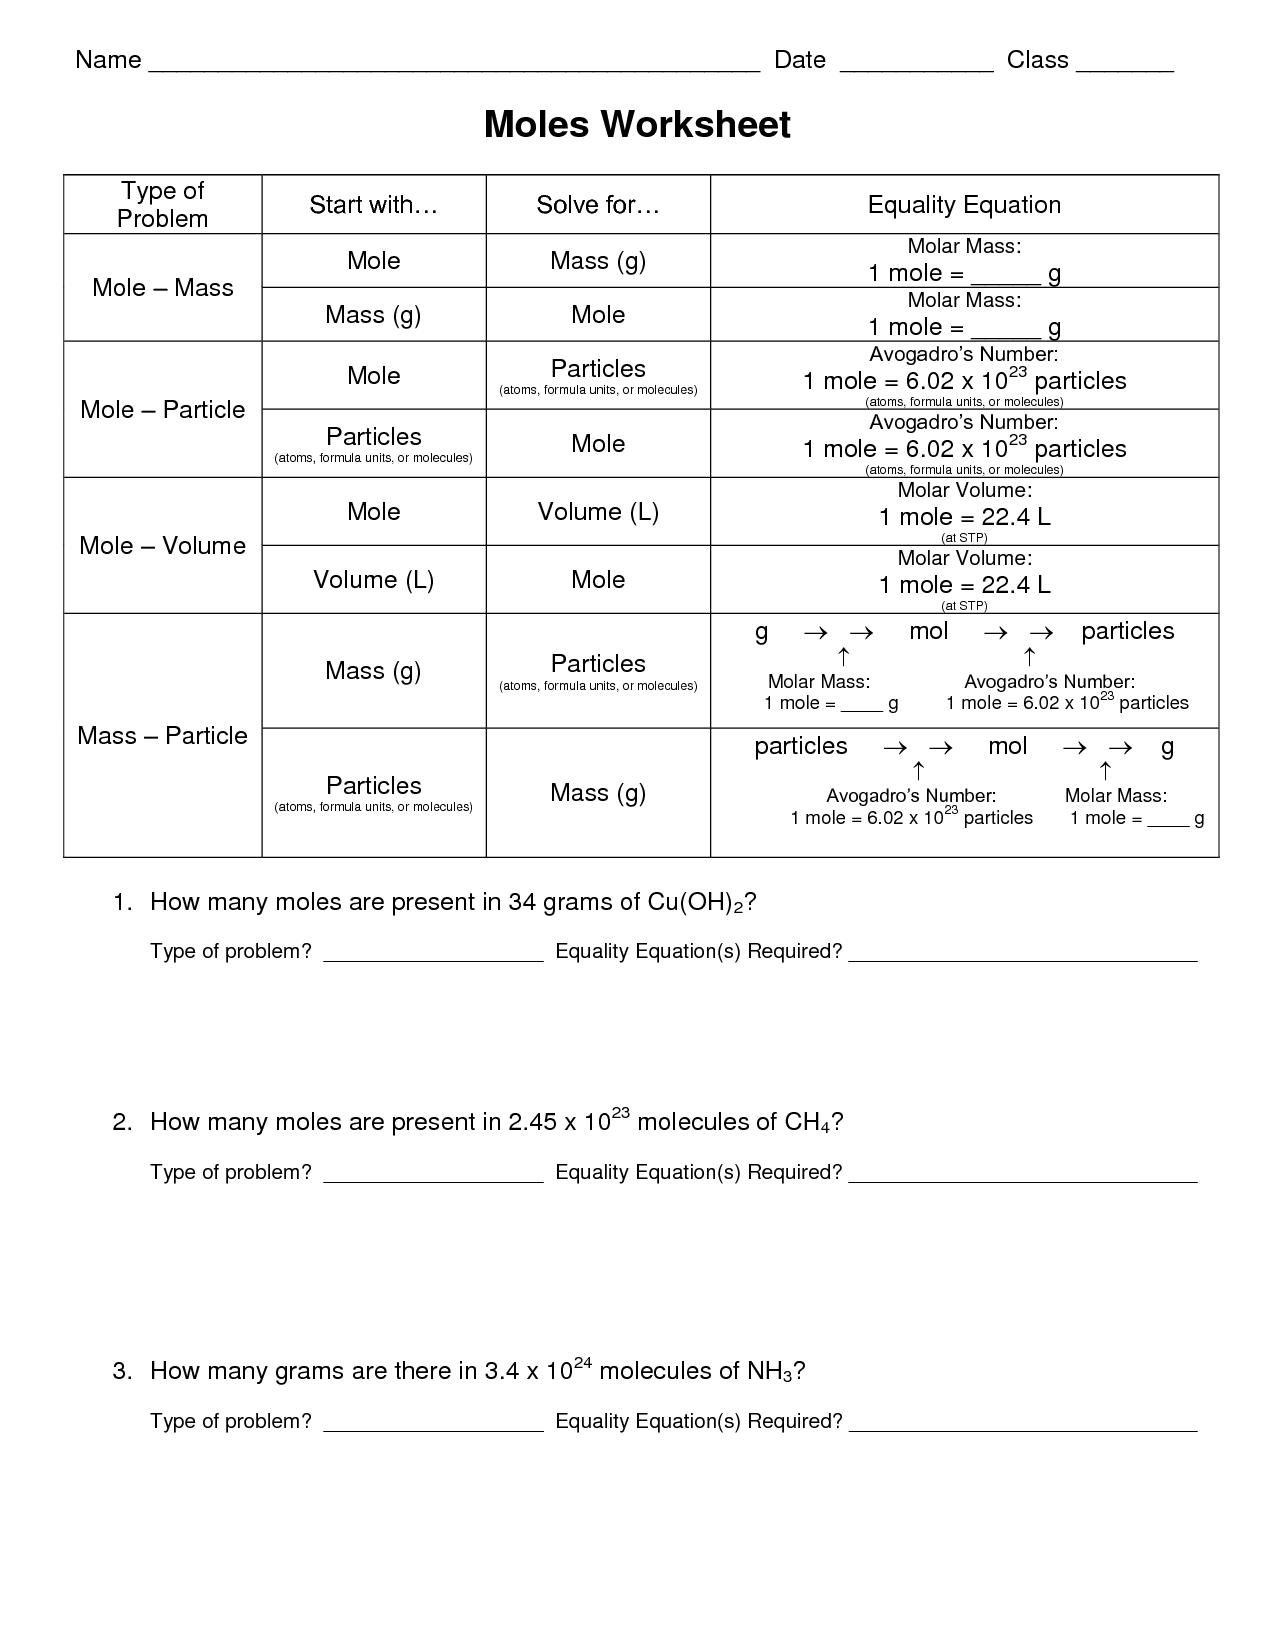 Worksheet On Stoichiometry Answer Key